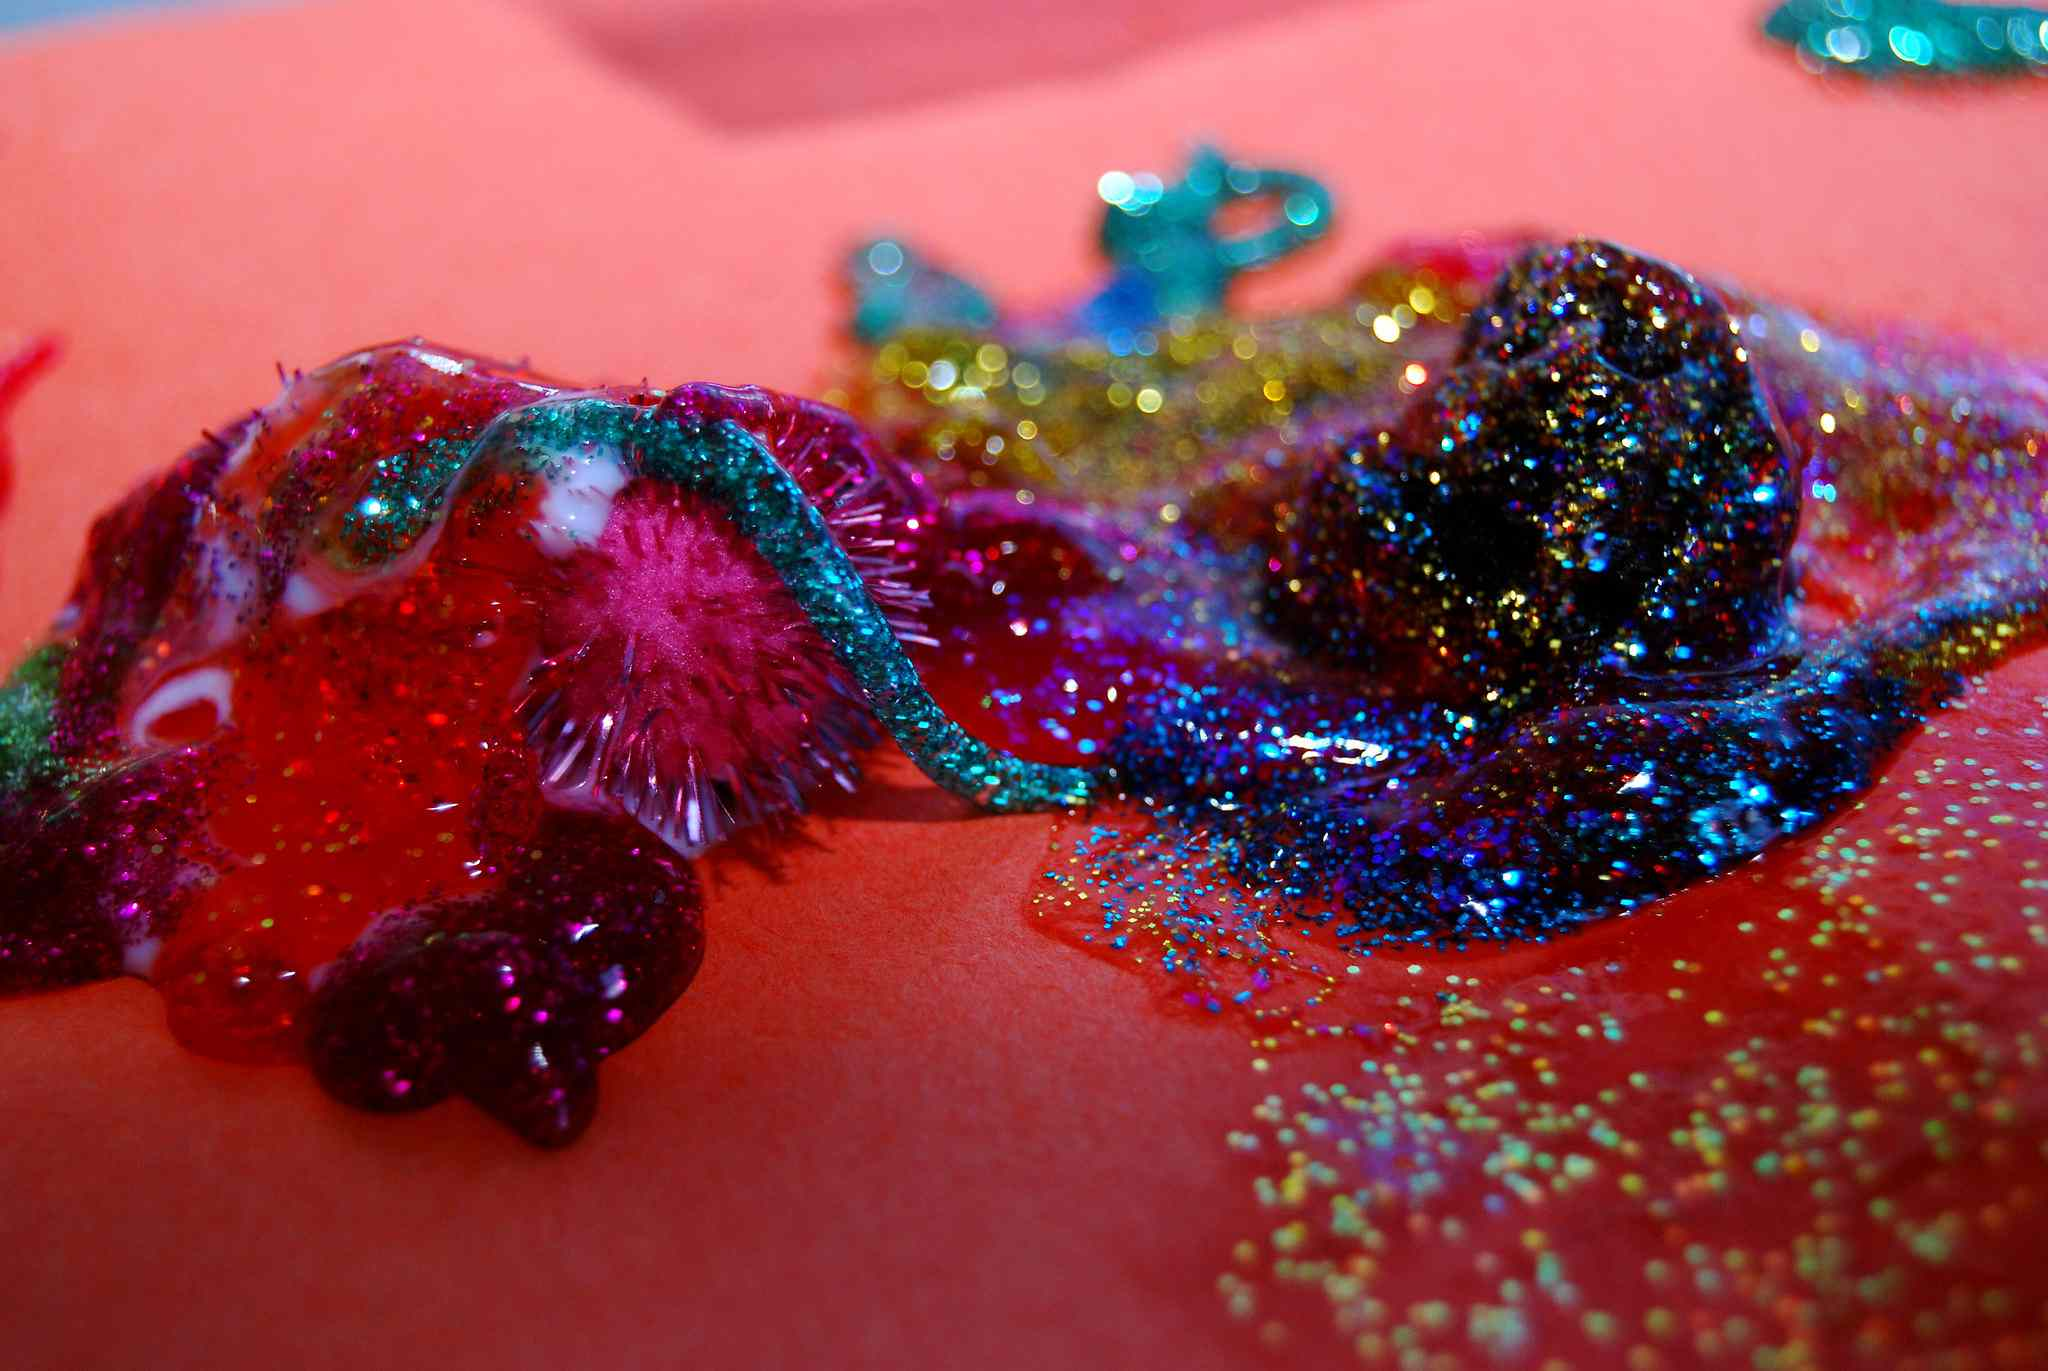 Close-up of different colors of glitter glue on paper